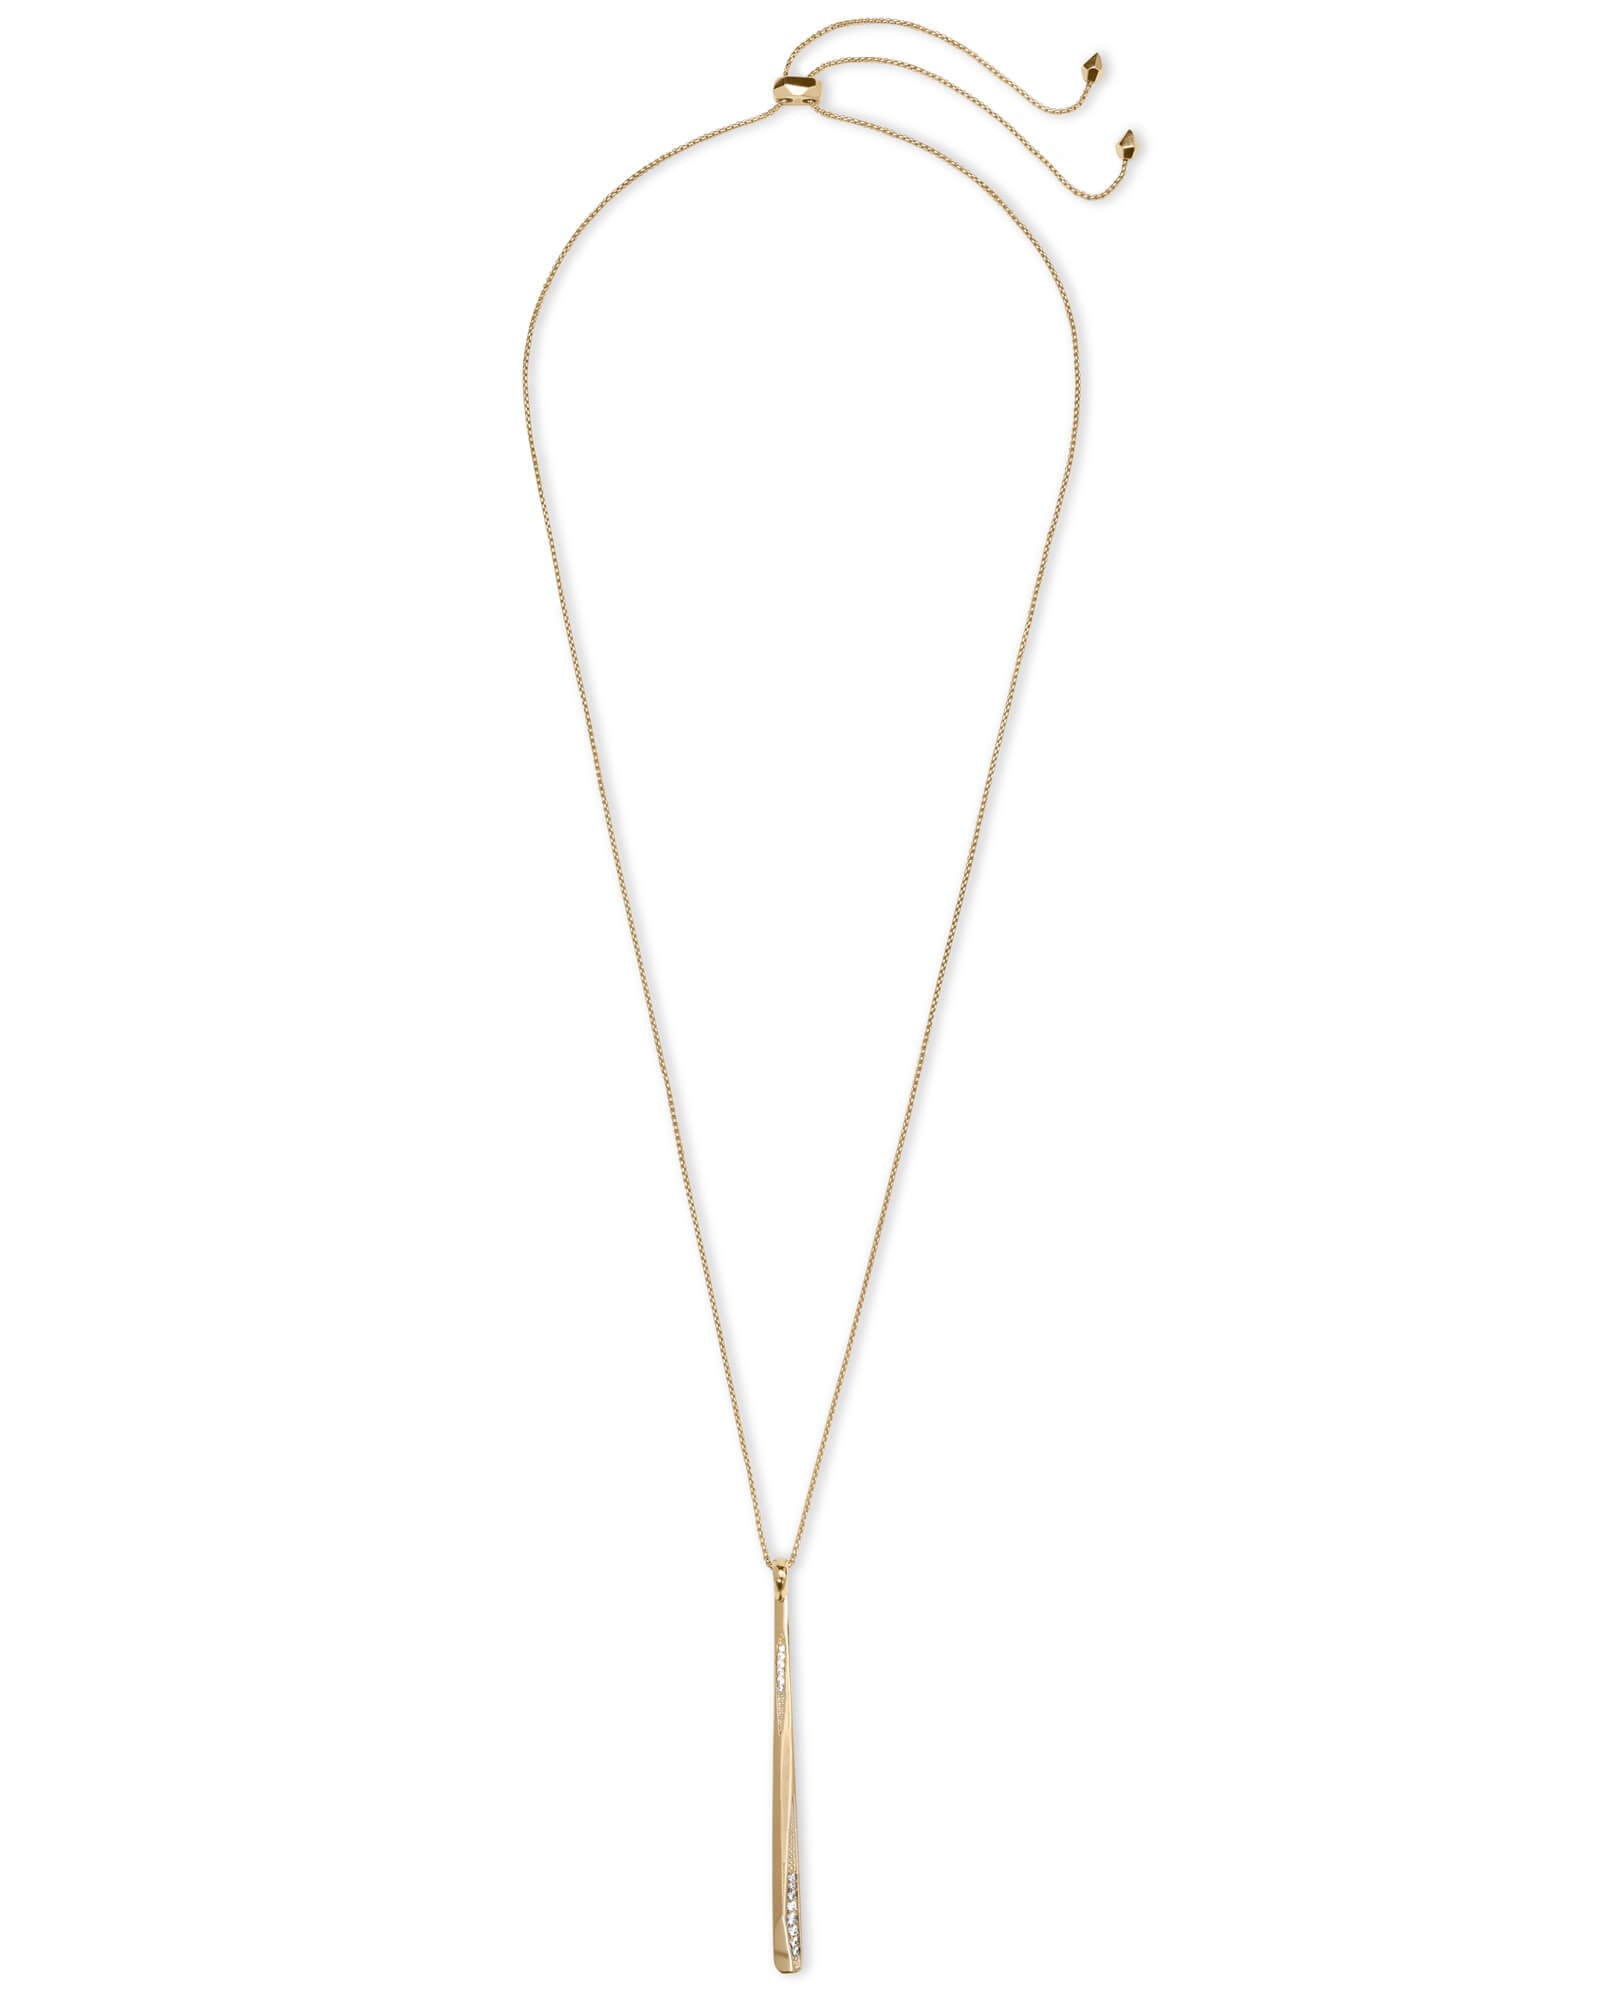 kendra-scott-ro-long-pendant-necklace-in-gold_01_default_lg.jpg